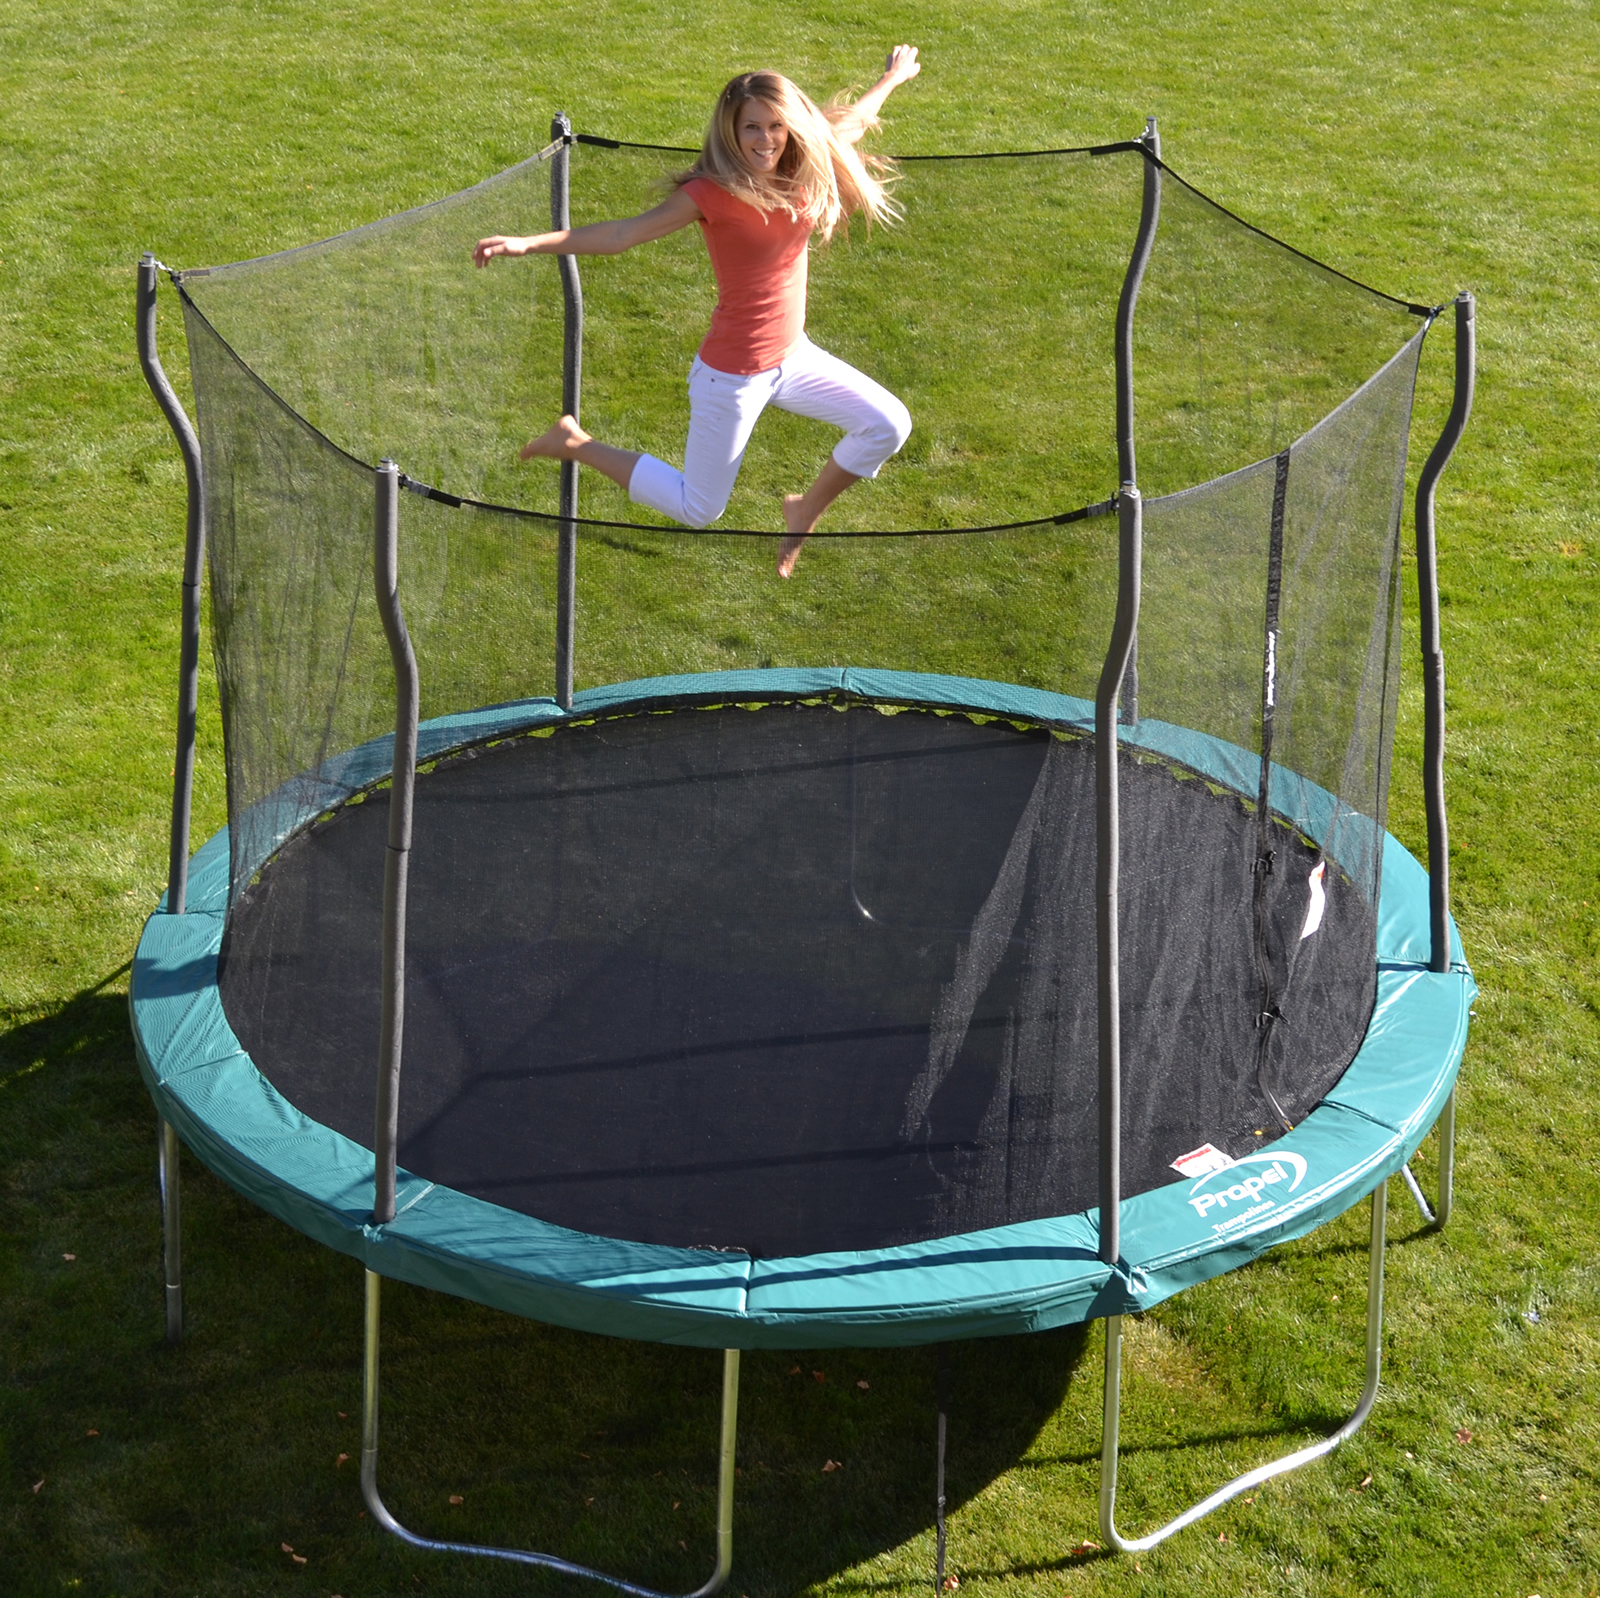 Propel Trampolines 12 Trampoline With Enclosure 199 99 Was 349 99 In 2020 Trampoline Enclosure Backyard Trampoline Enclosed Trampoline